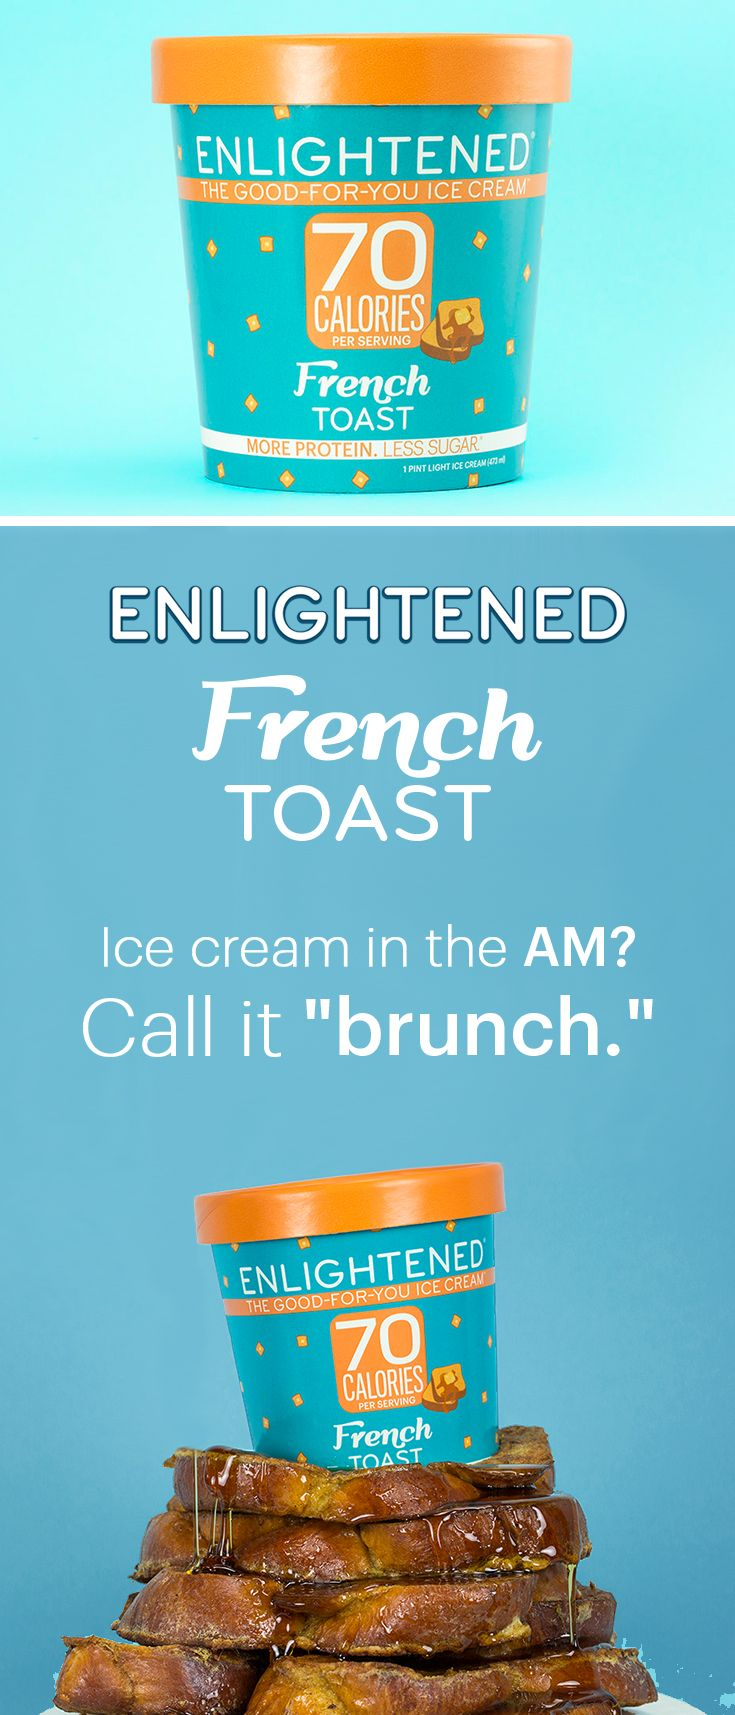 Nothing like waking up to the smell of fresh baked French toast ice cream. High protein, low sugar ice cream in 5 new flavors.